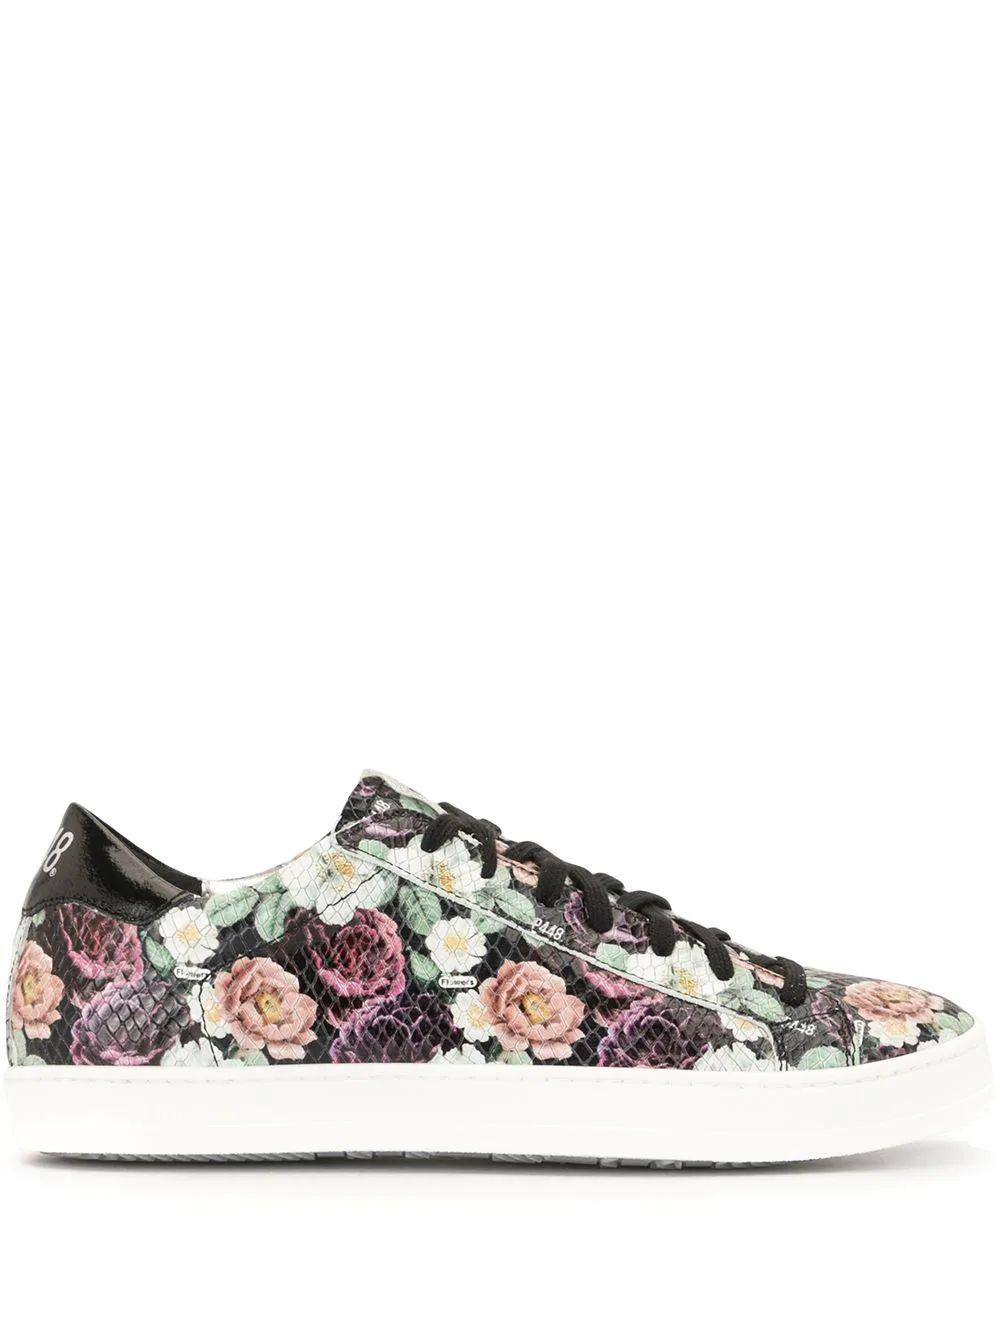 All Over Floral Print Sneaker Item # F20JOHN-W-FLWR